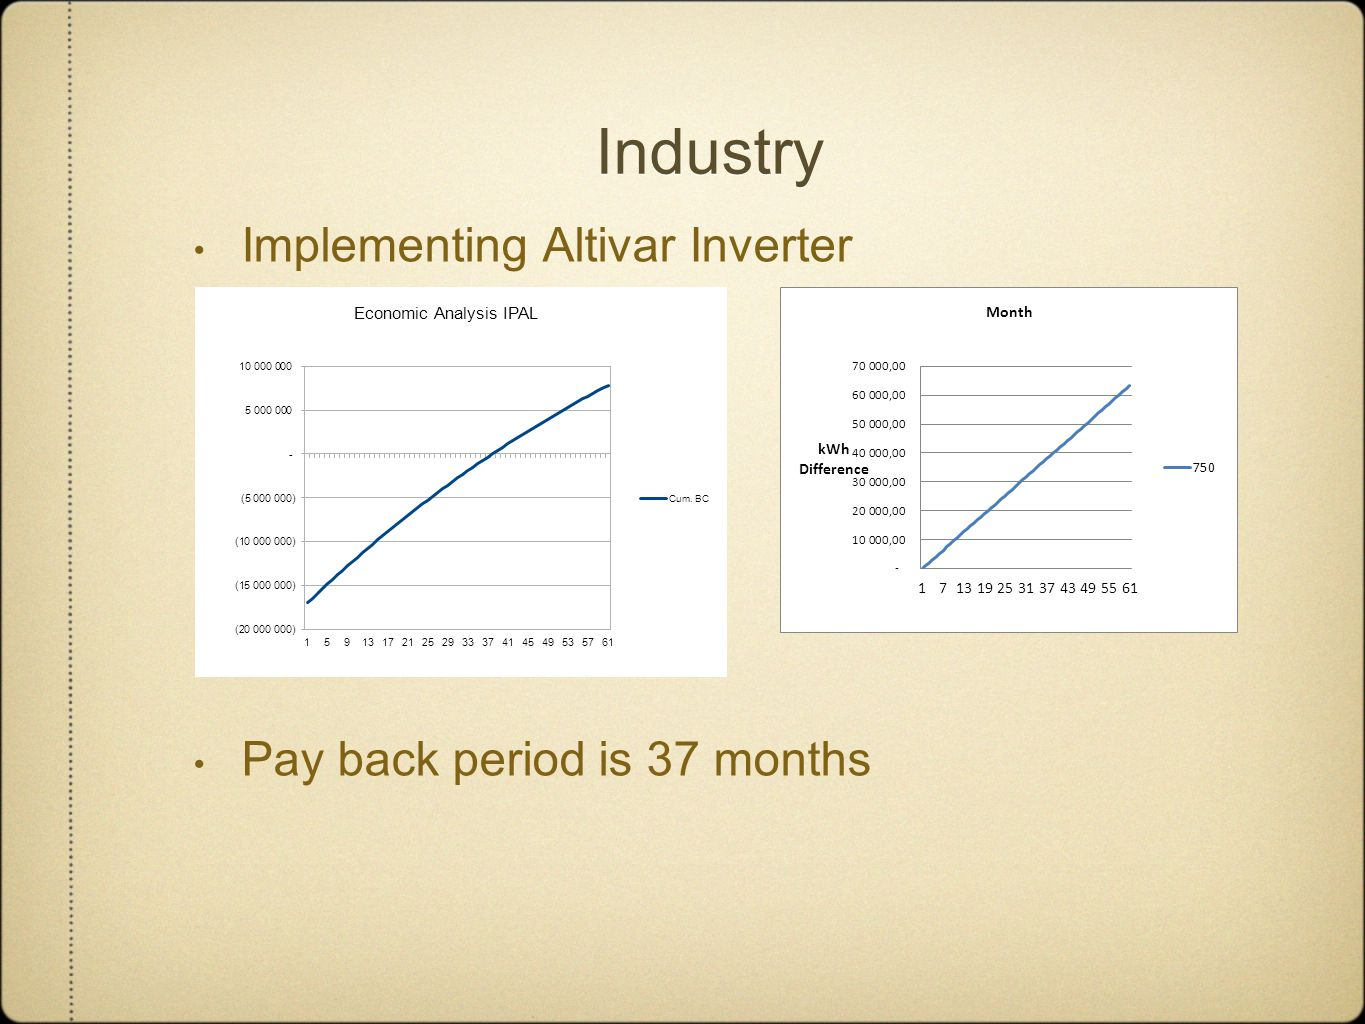 Industry Implementing Altivar Inverter Pay back period is 37 months